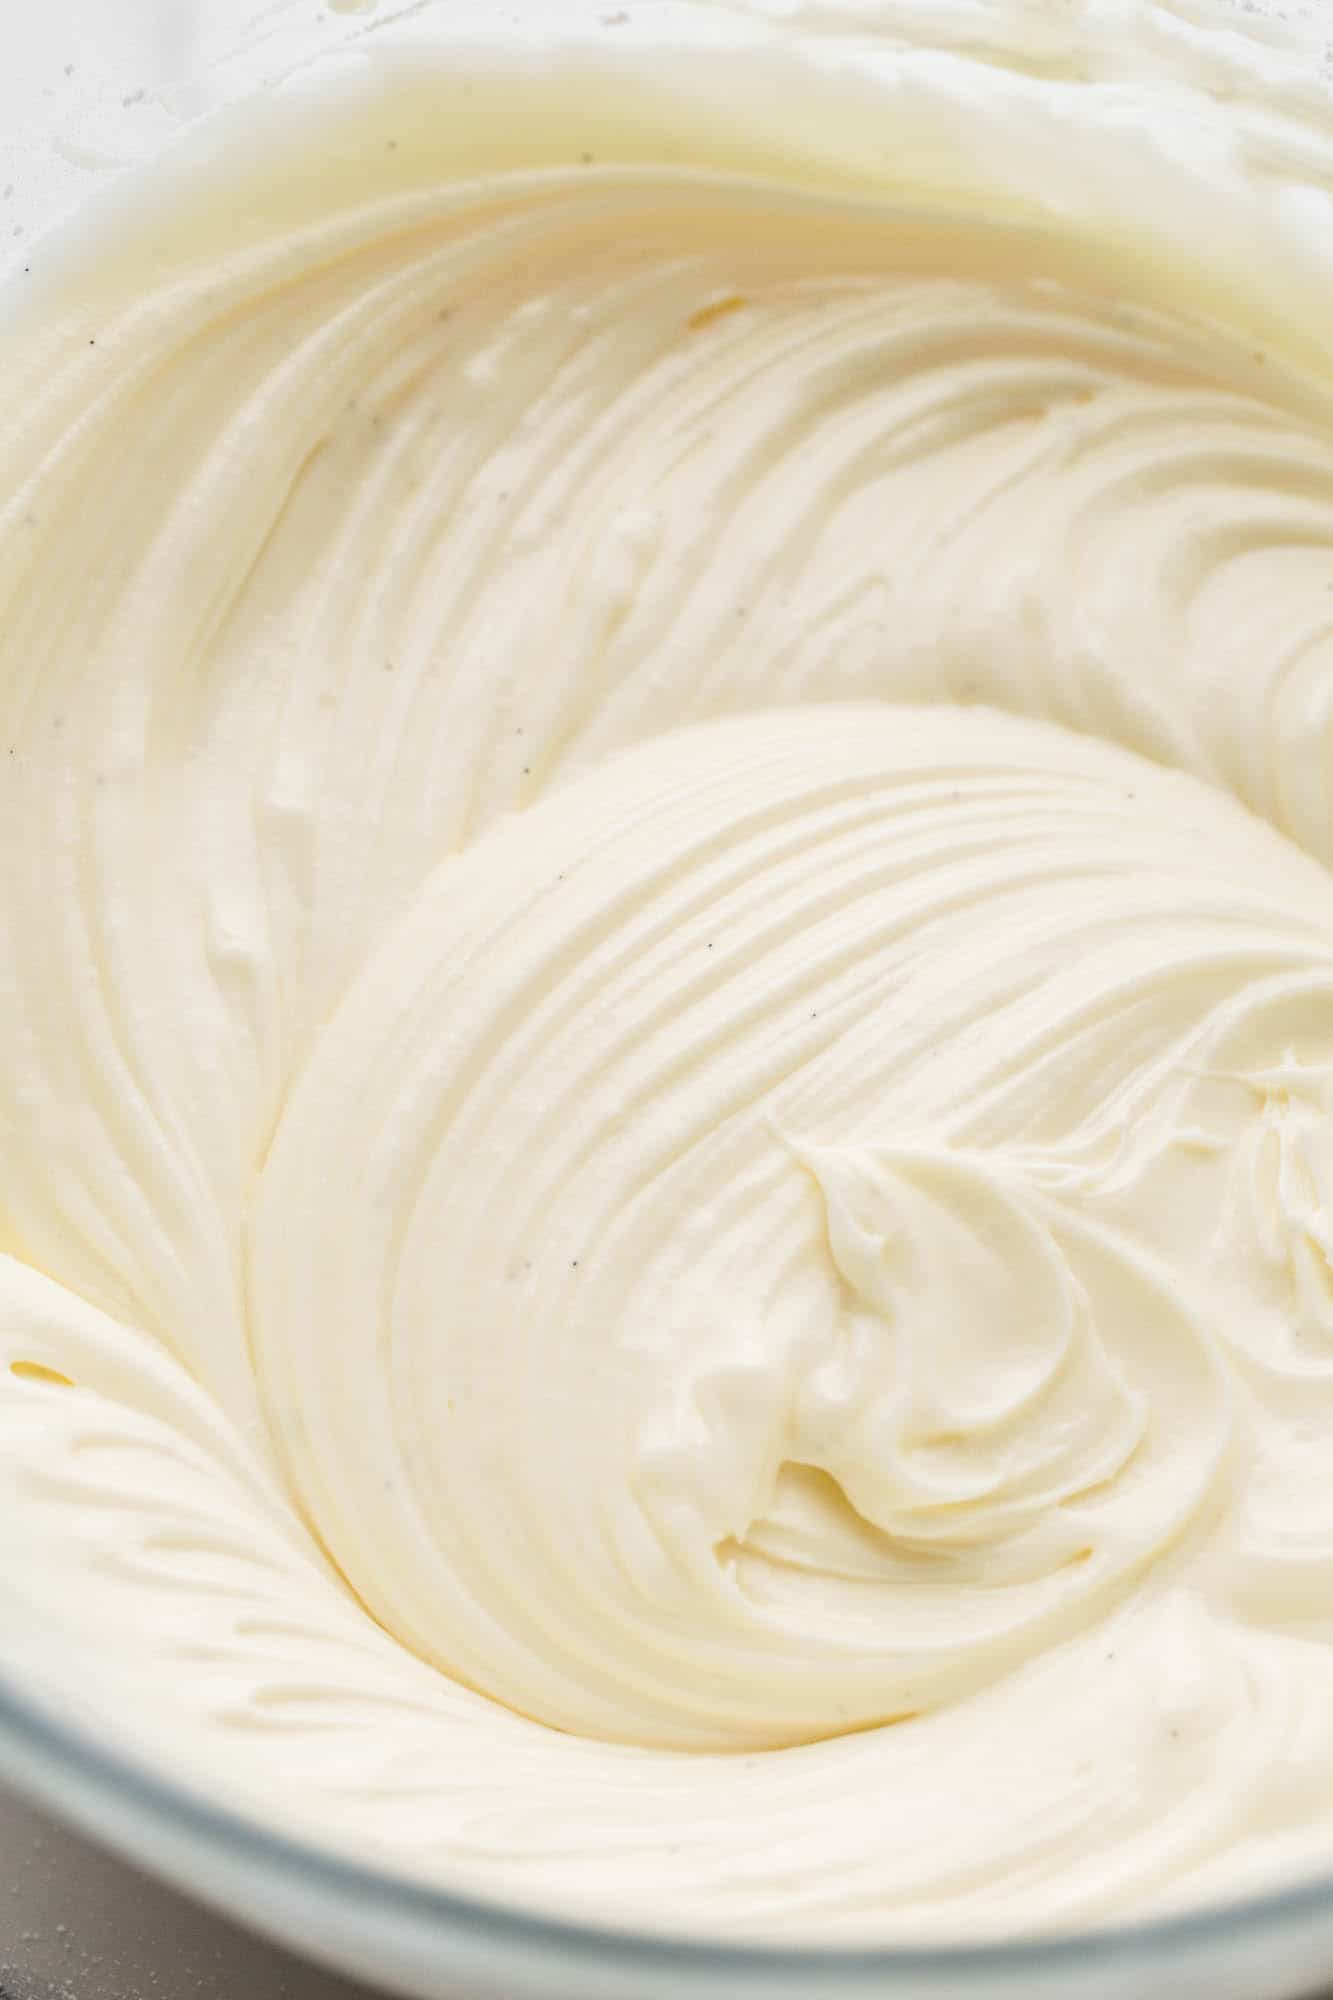 Cream cheese frosting with vanilla bean